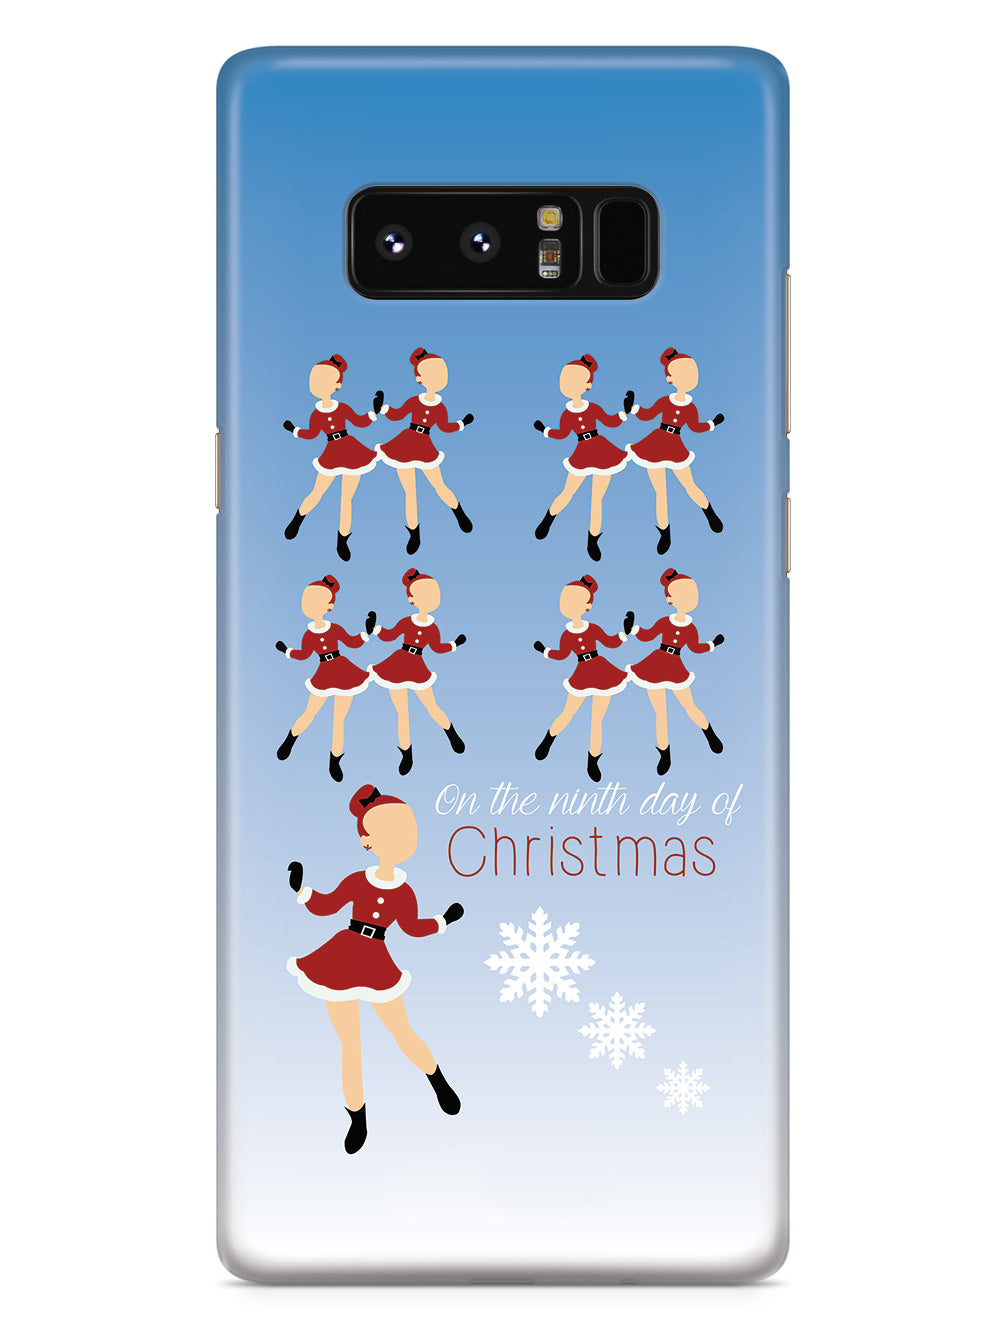 On the Ninth Day of Christmas - 9 Ladies Dancing Case